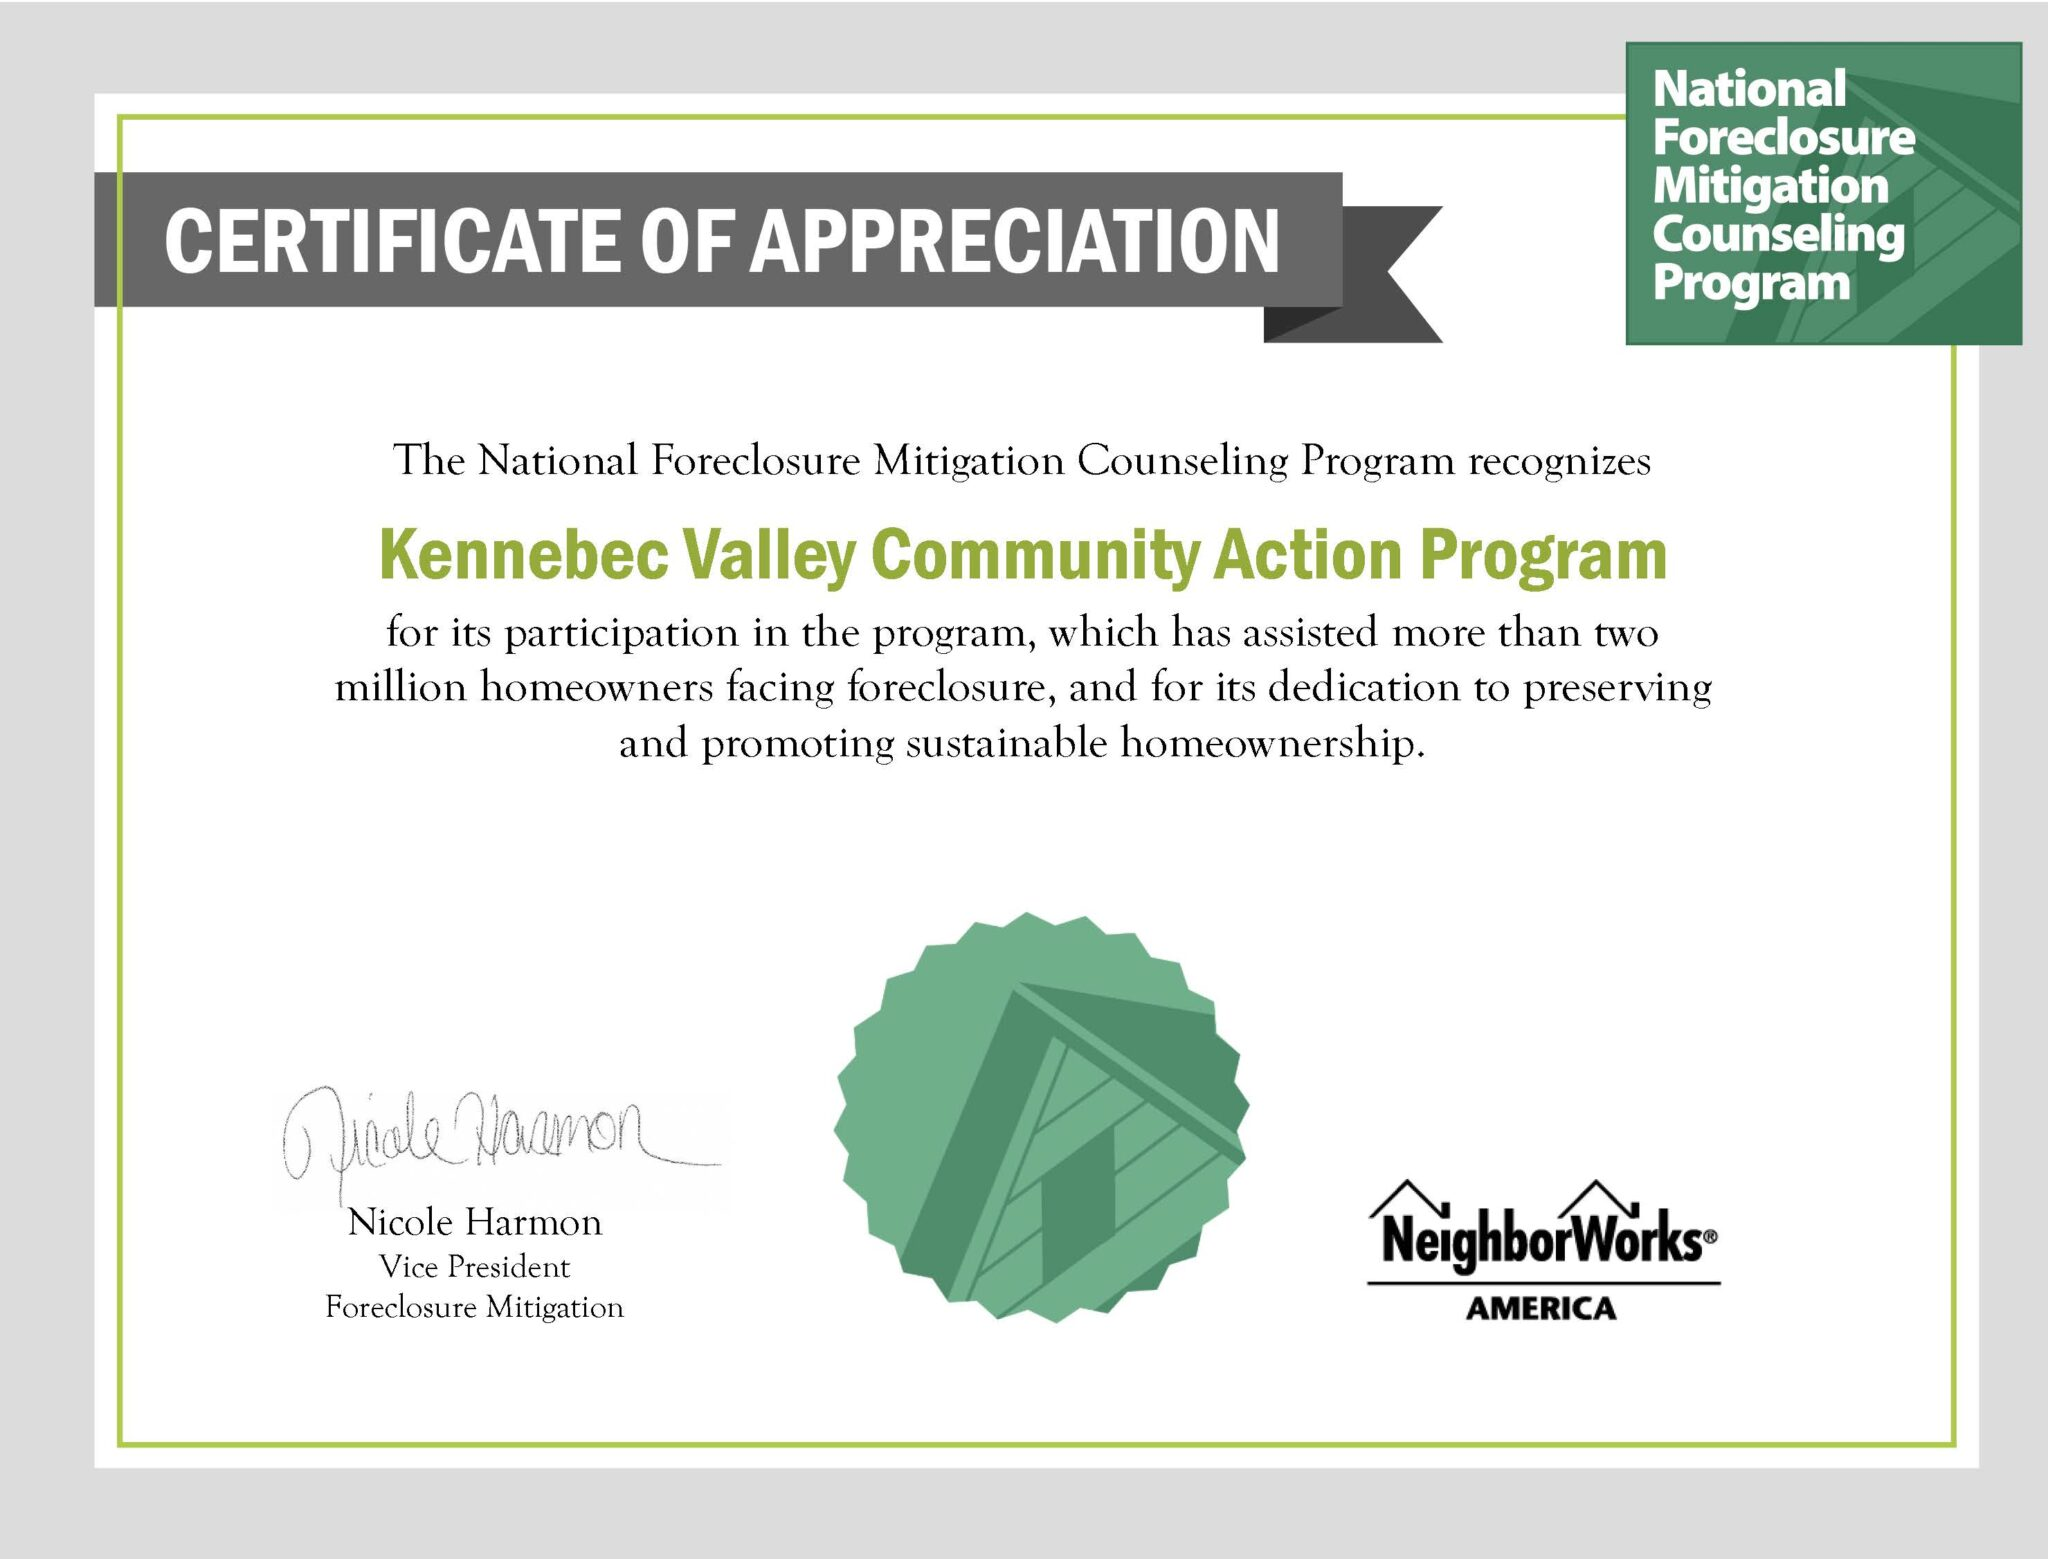 certificate of appreciation from neighborworks america to kvcap